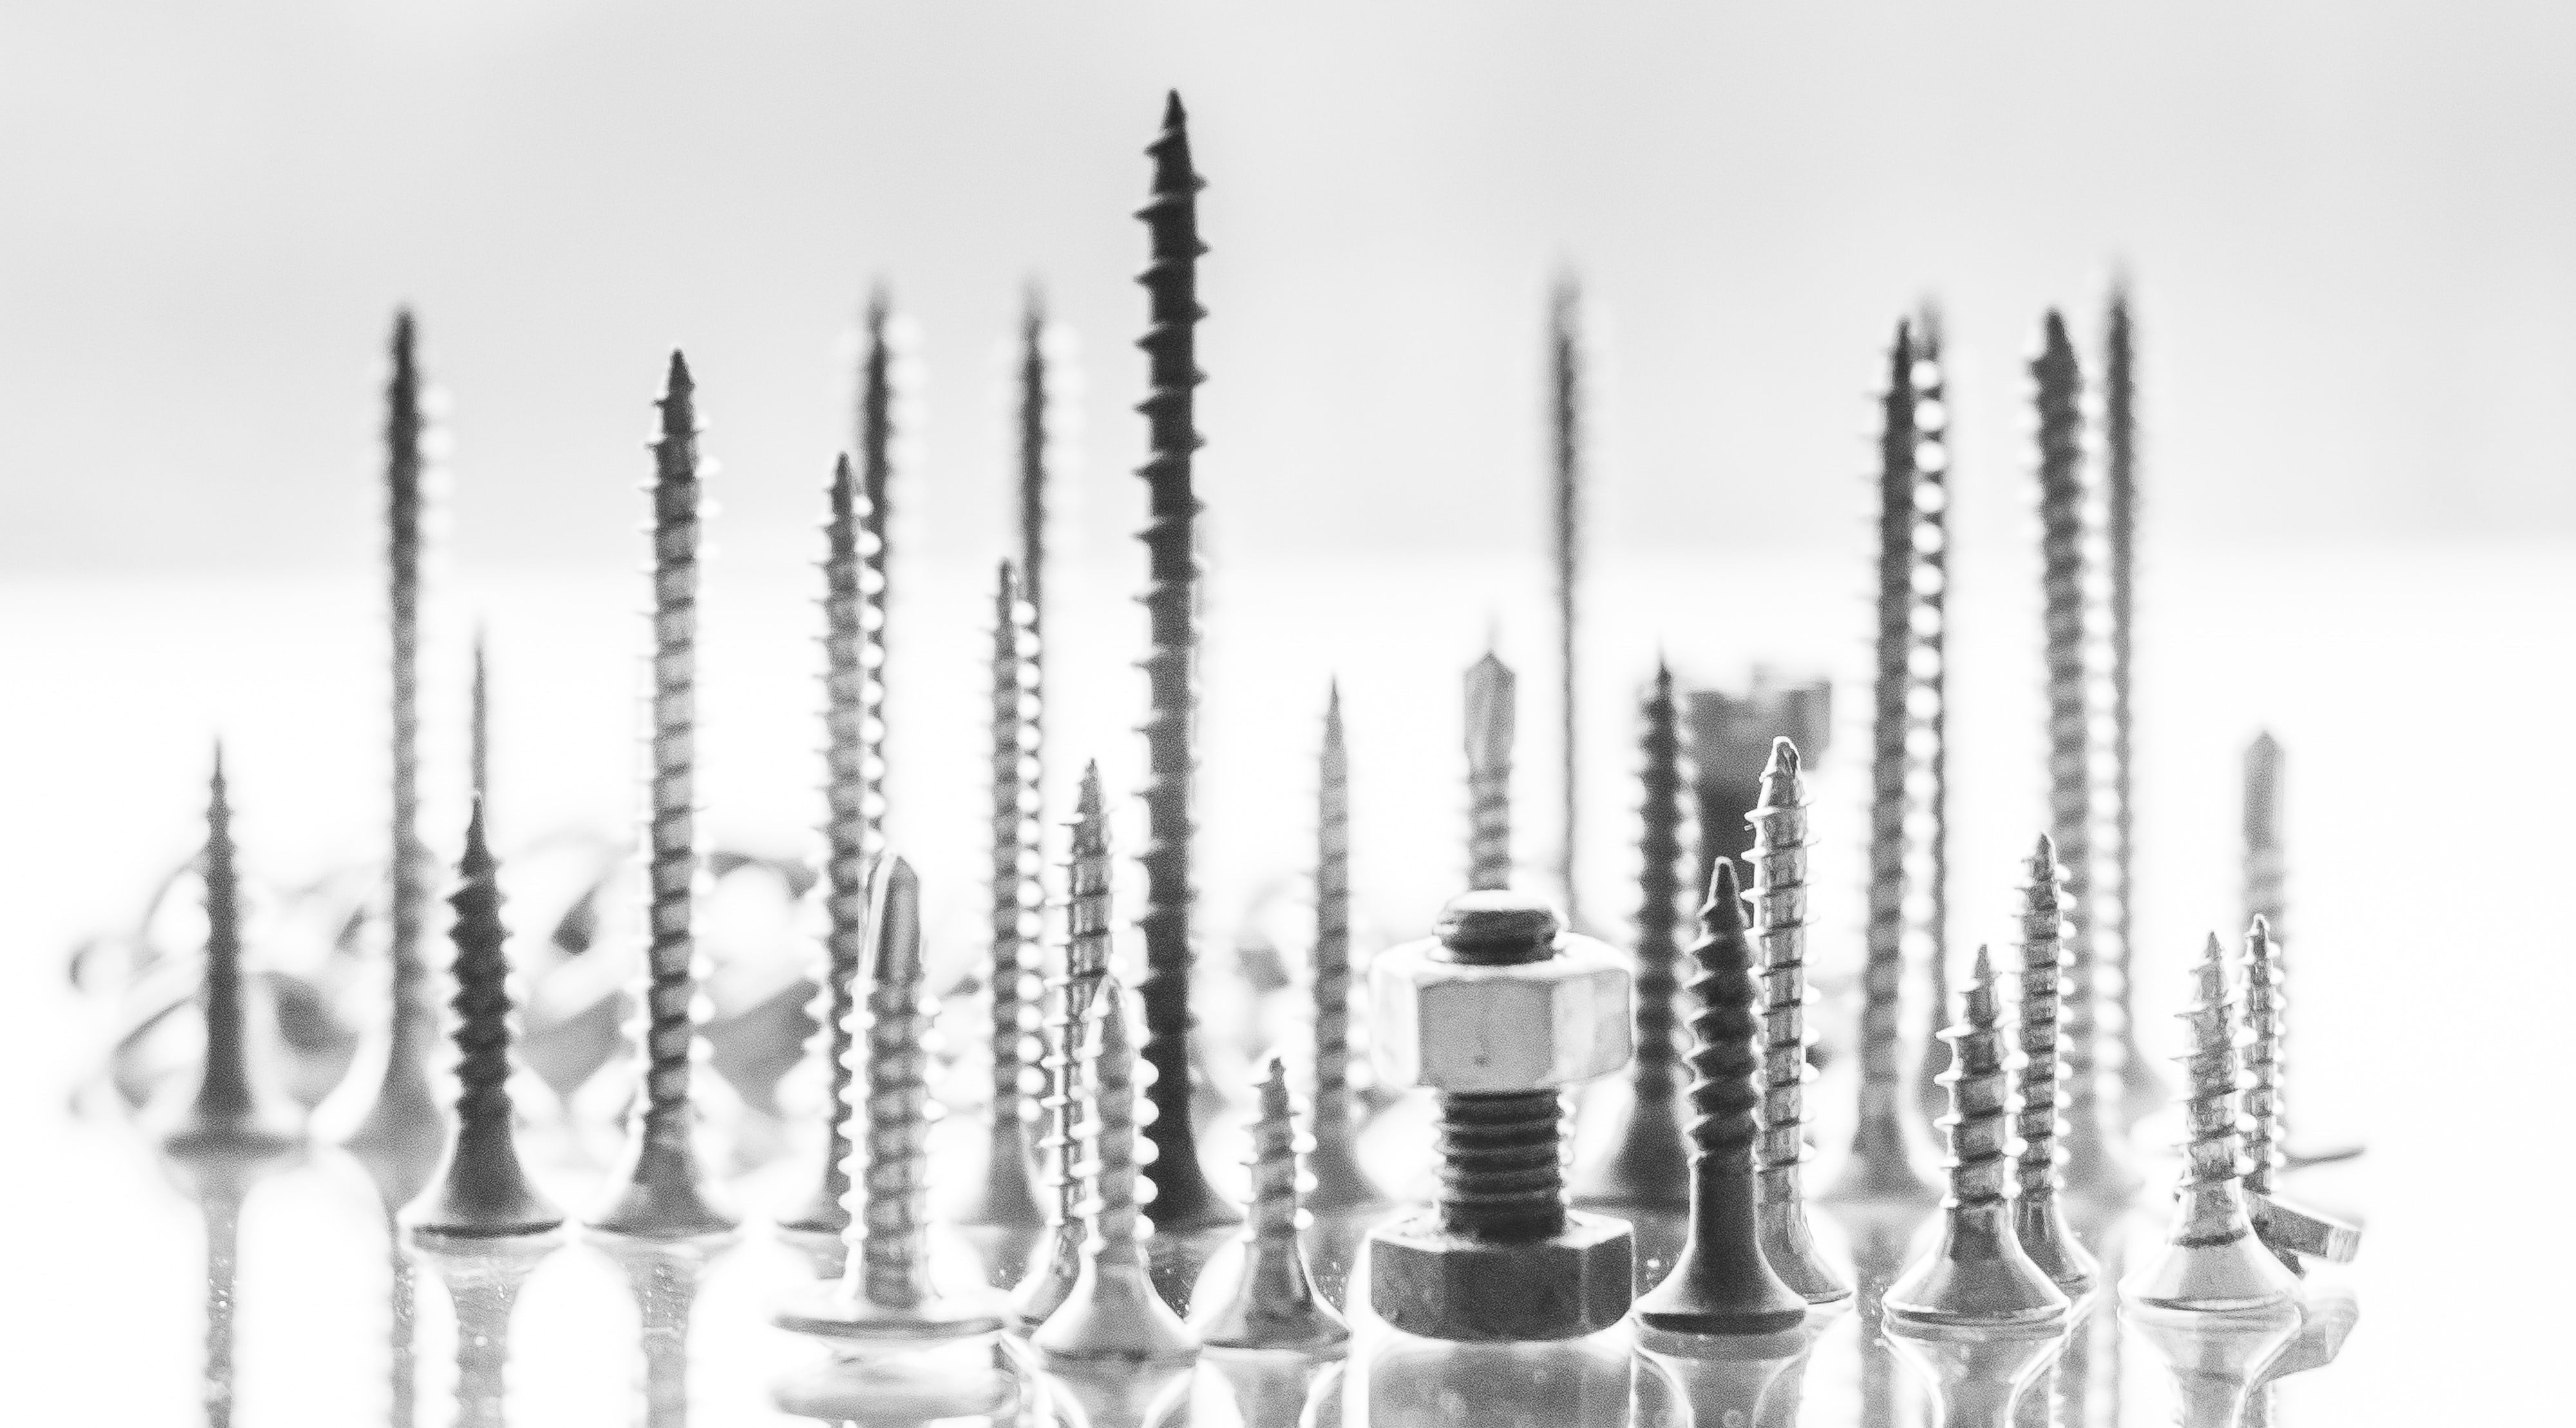 fasteners, screws and bolts